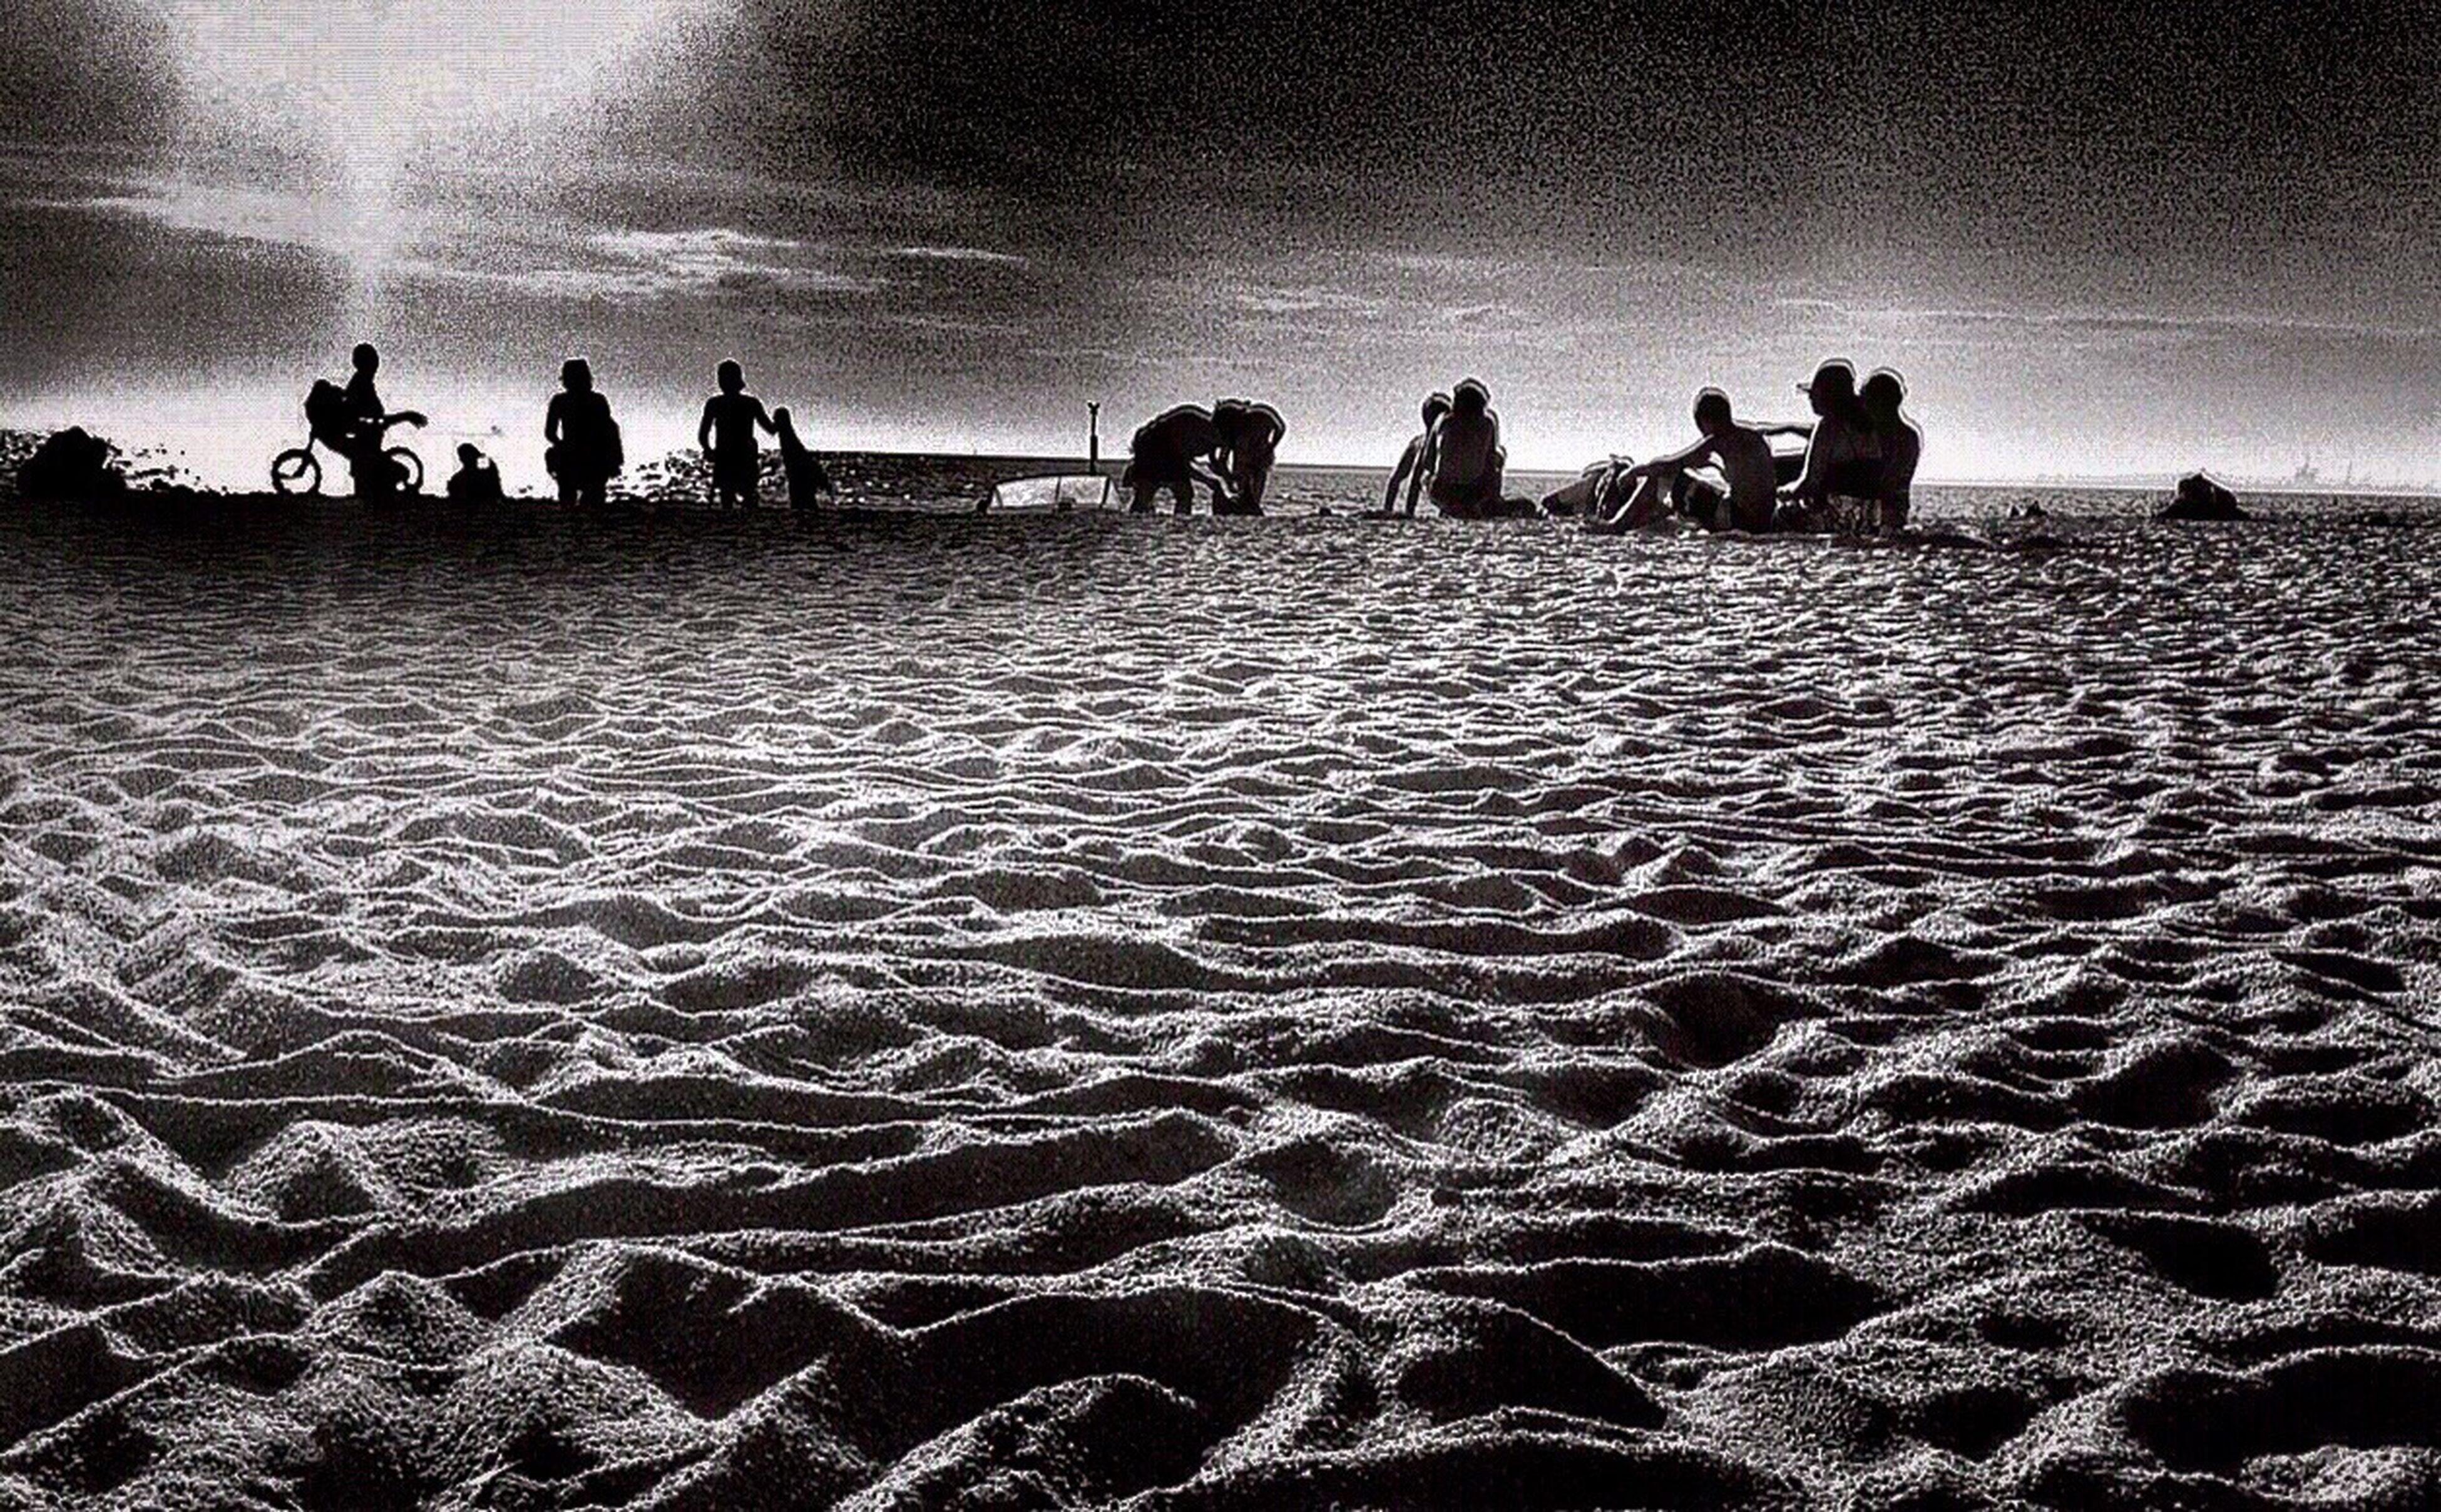 large group of people, beach, sand, lifestyles, person, leisure activity, men, sky, vacations, mixed age range, silhouette, tourism, medium group of people, togetherness, tourist, travel destinations, scenics, nature, tranquil scene